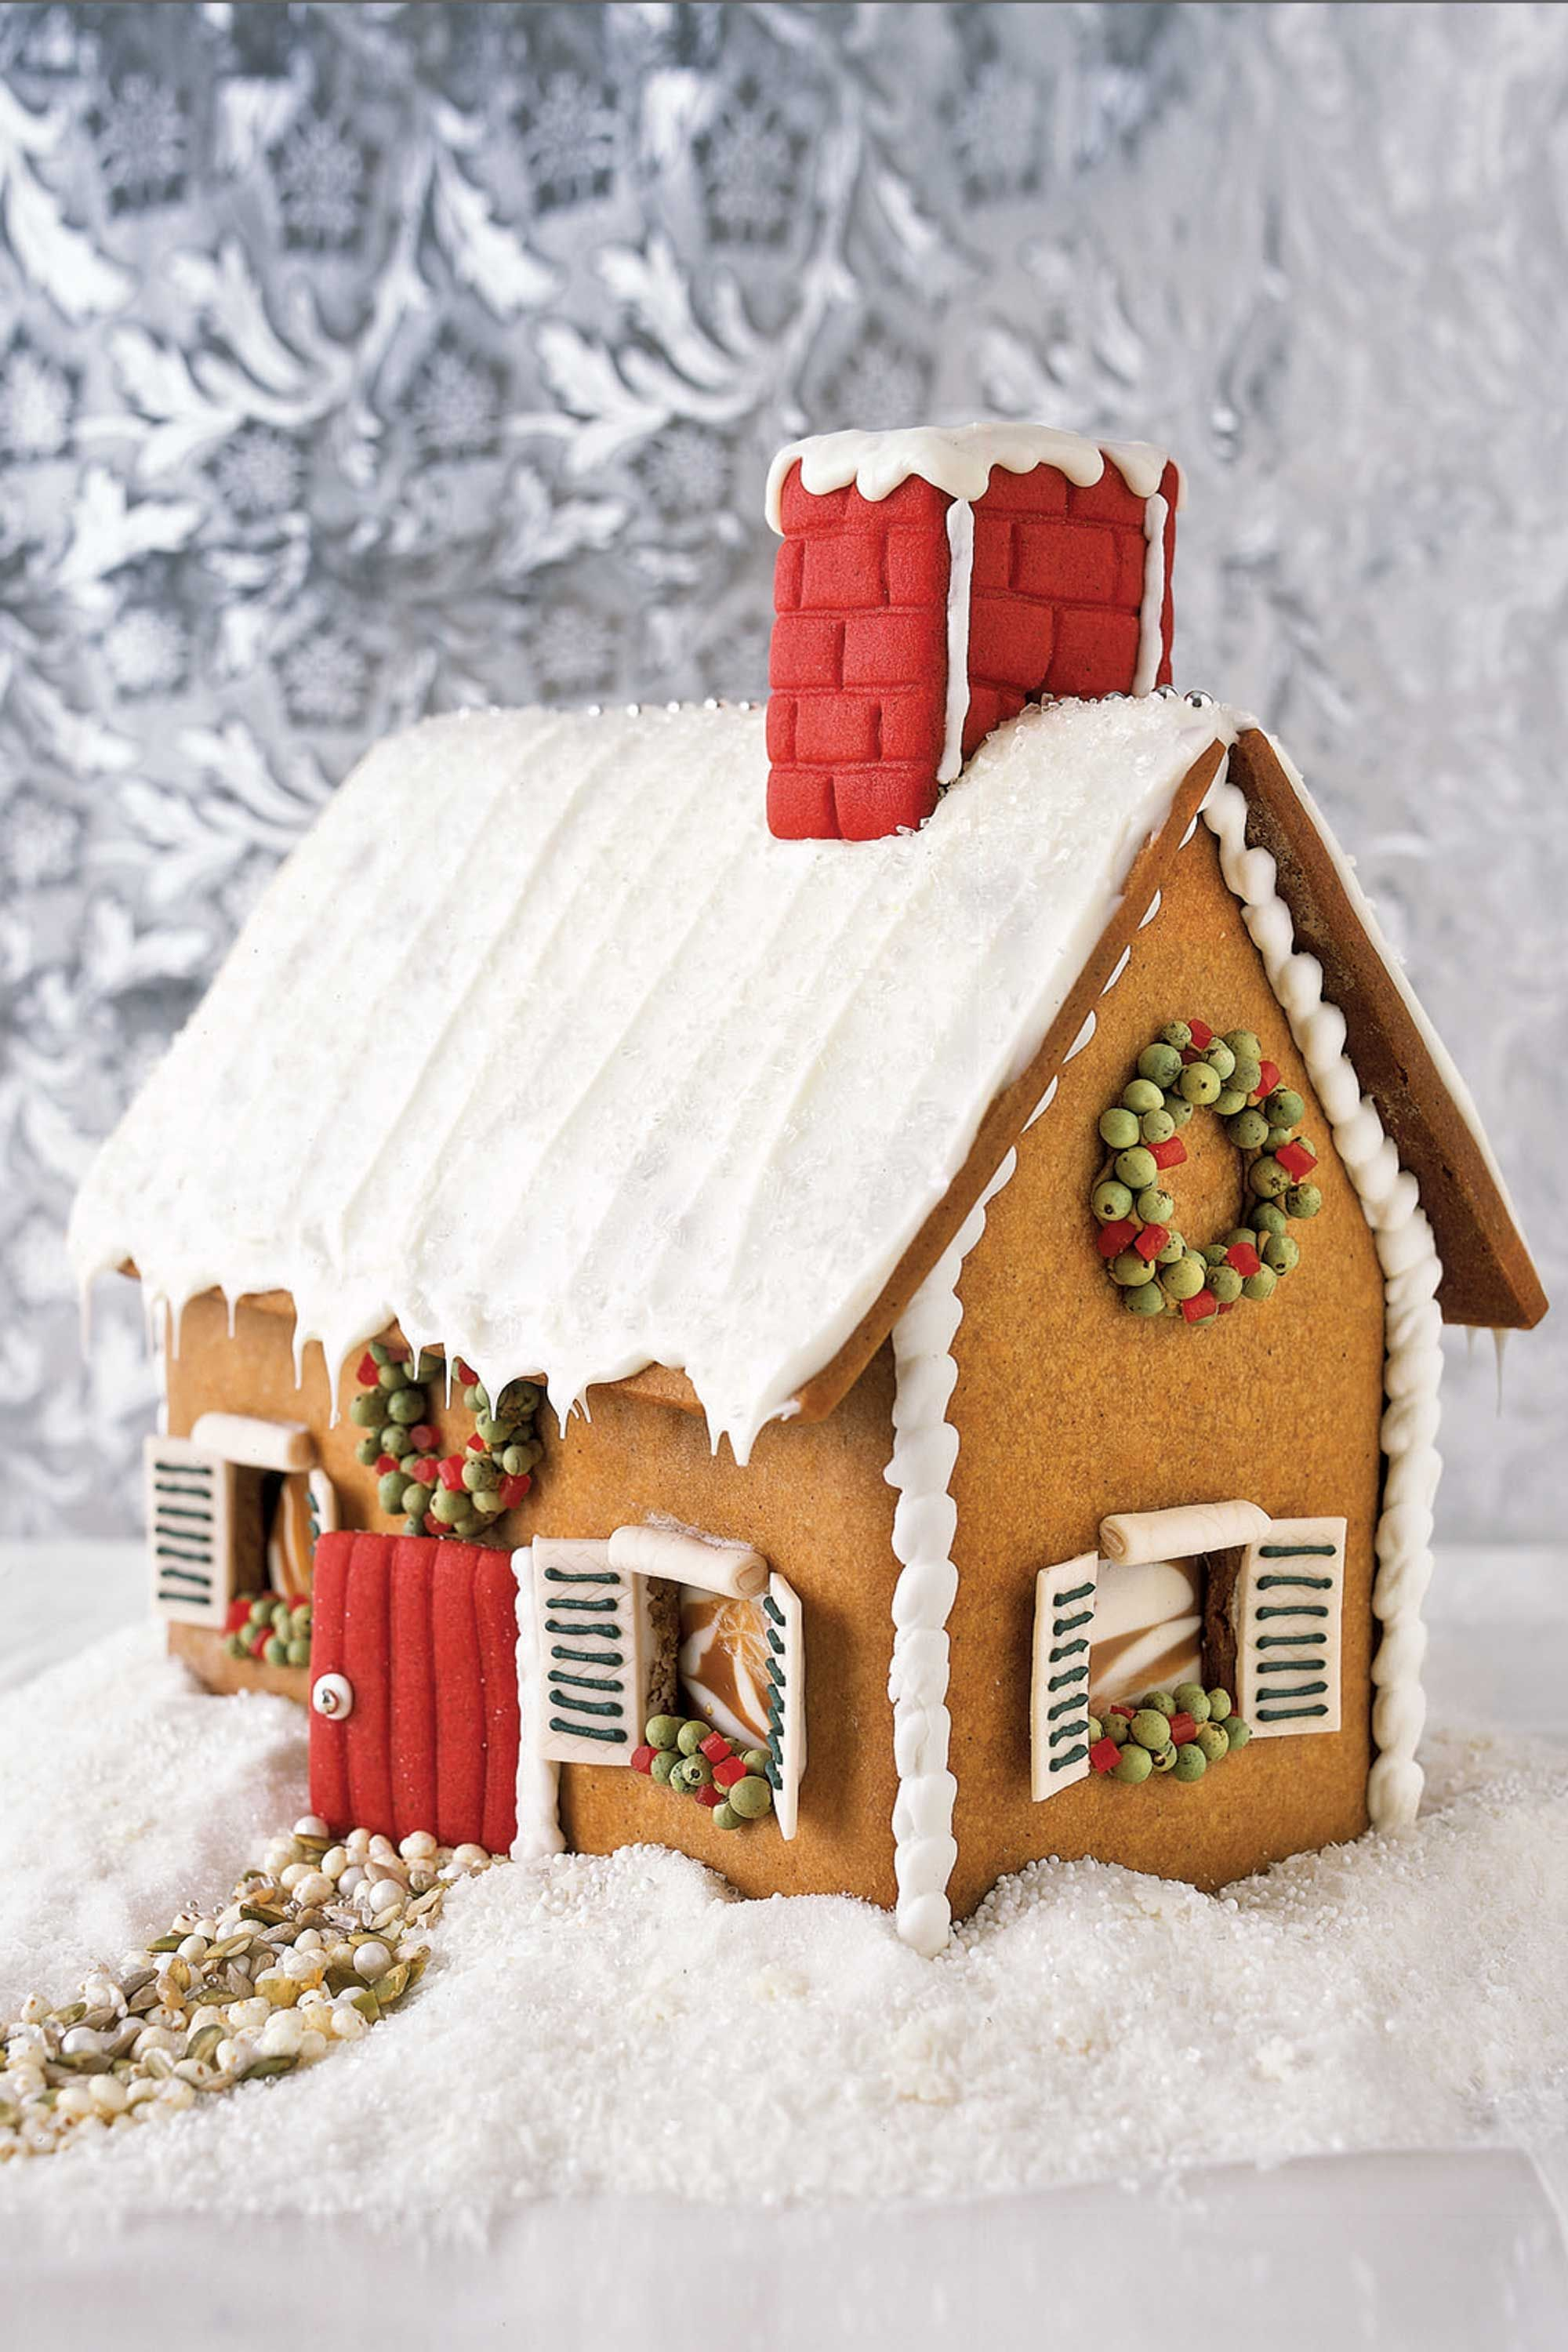 32 cute gingerbread house ideas pictures how to make a gingerbread house - Gingerbread House Christmas Decorations